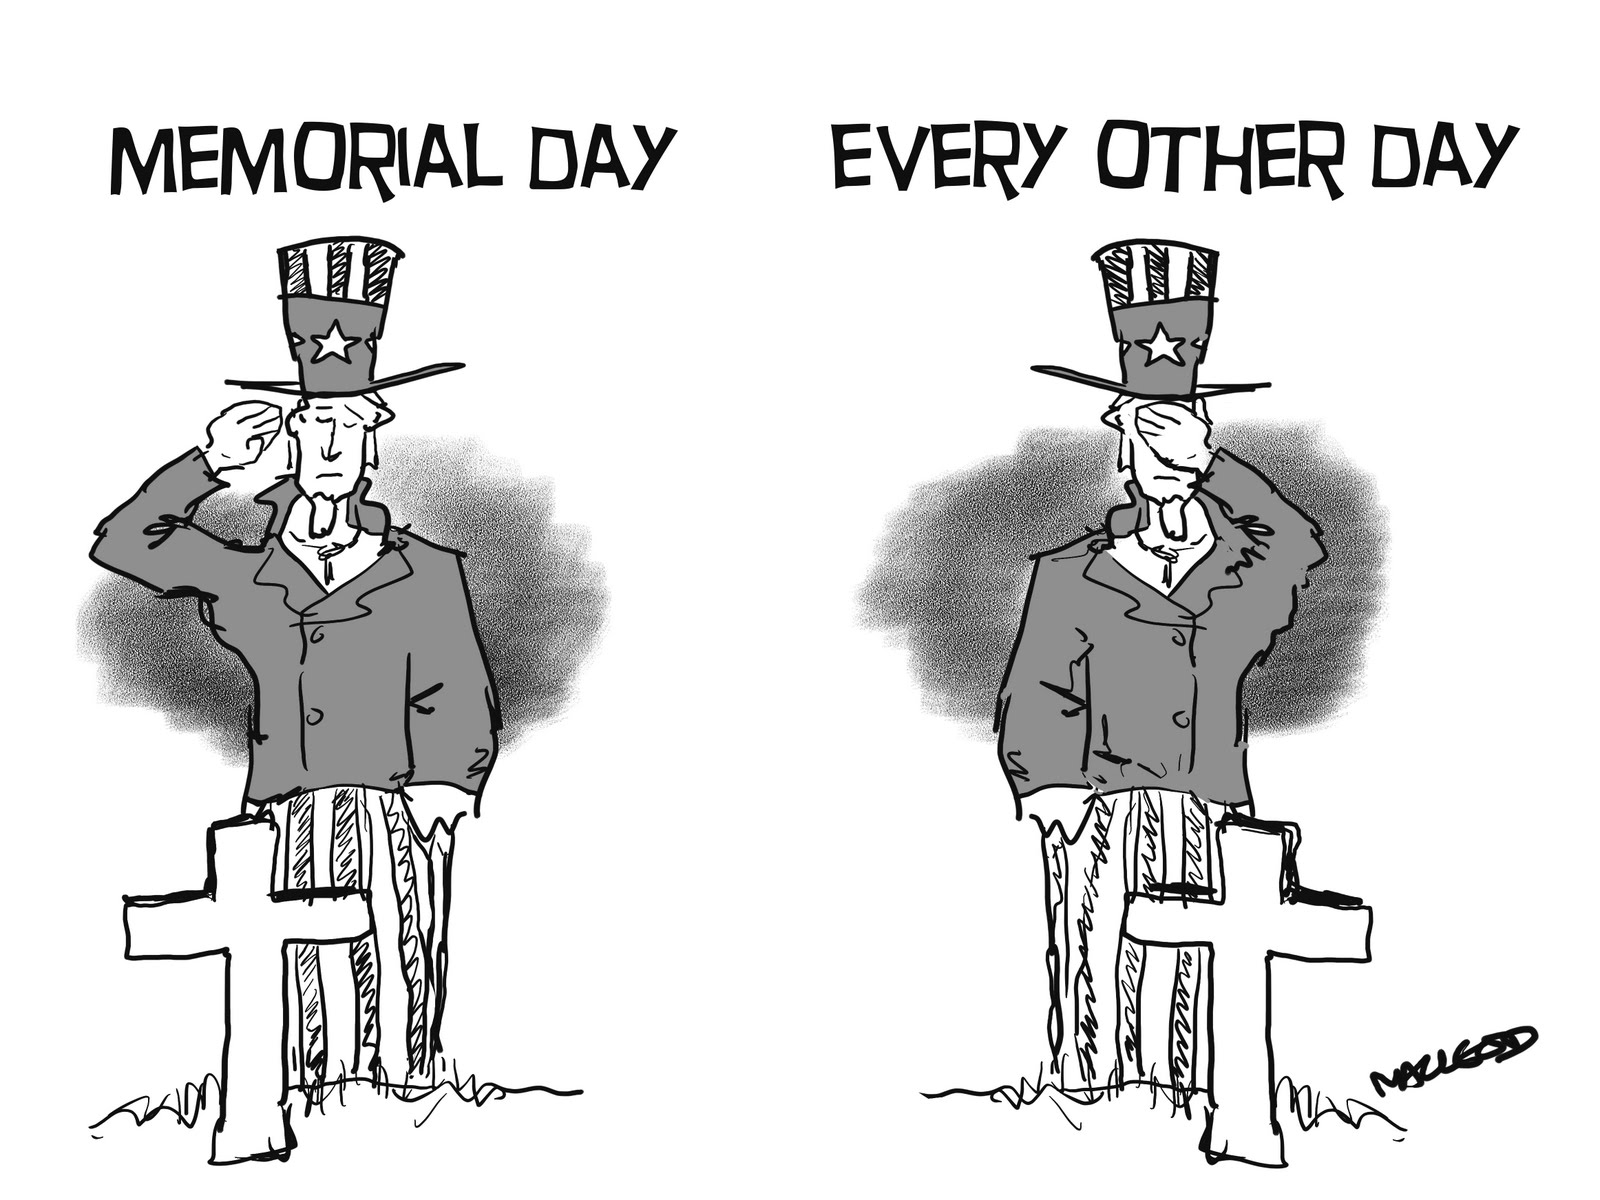 memorial day cartoons